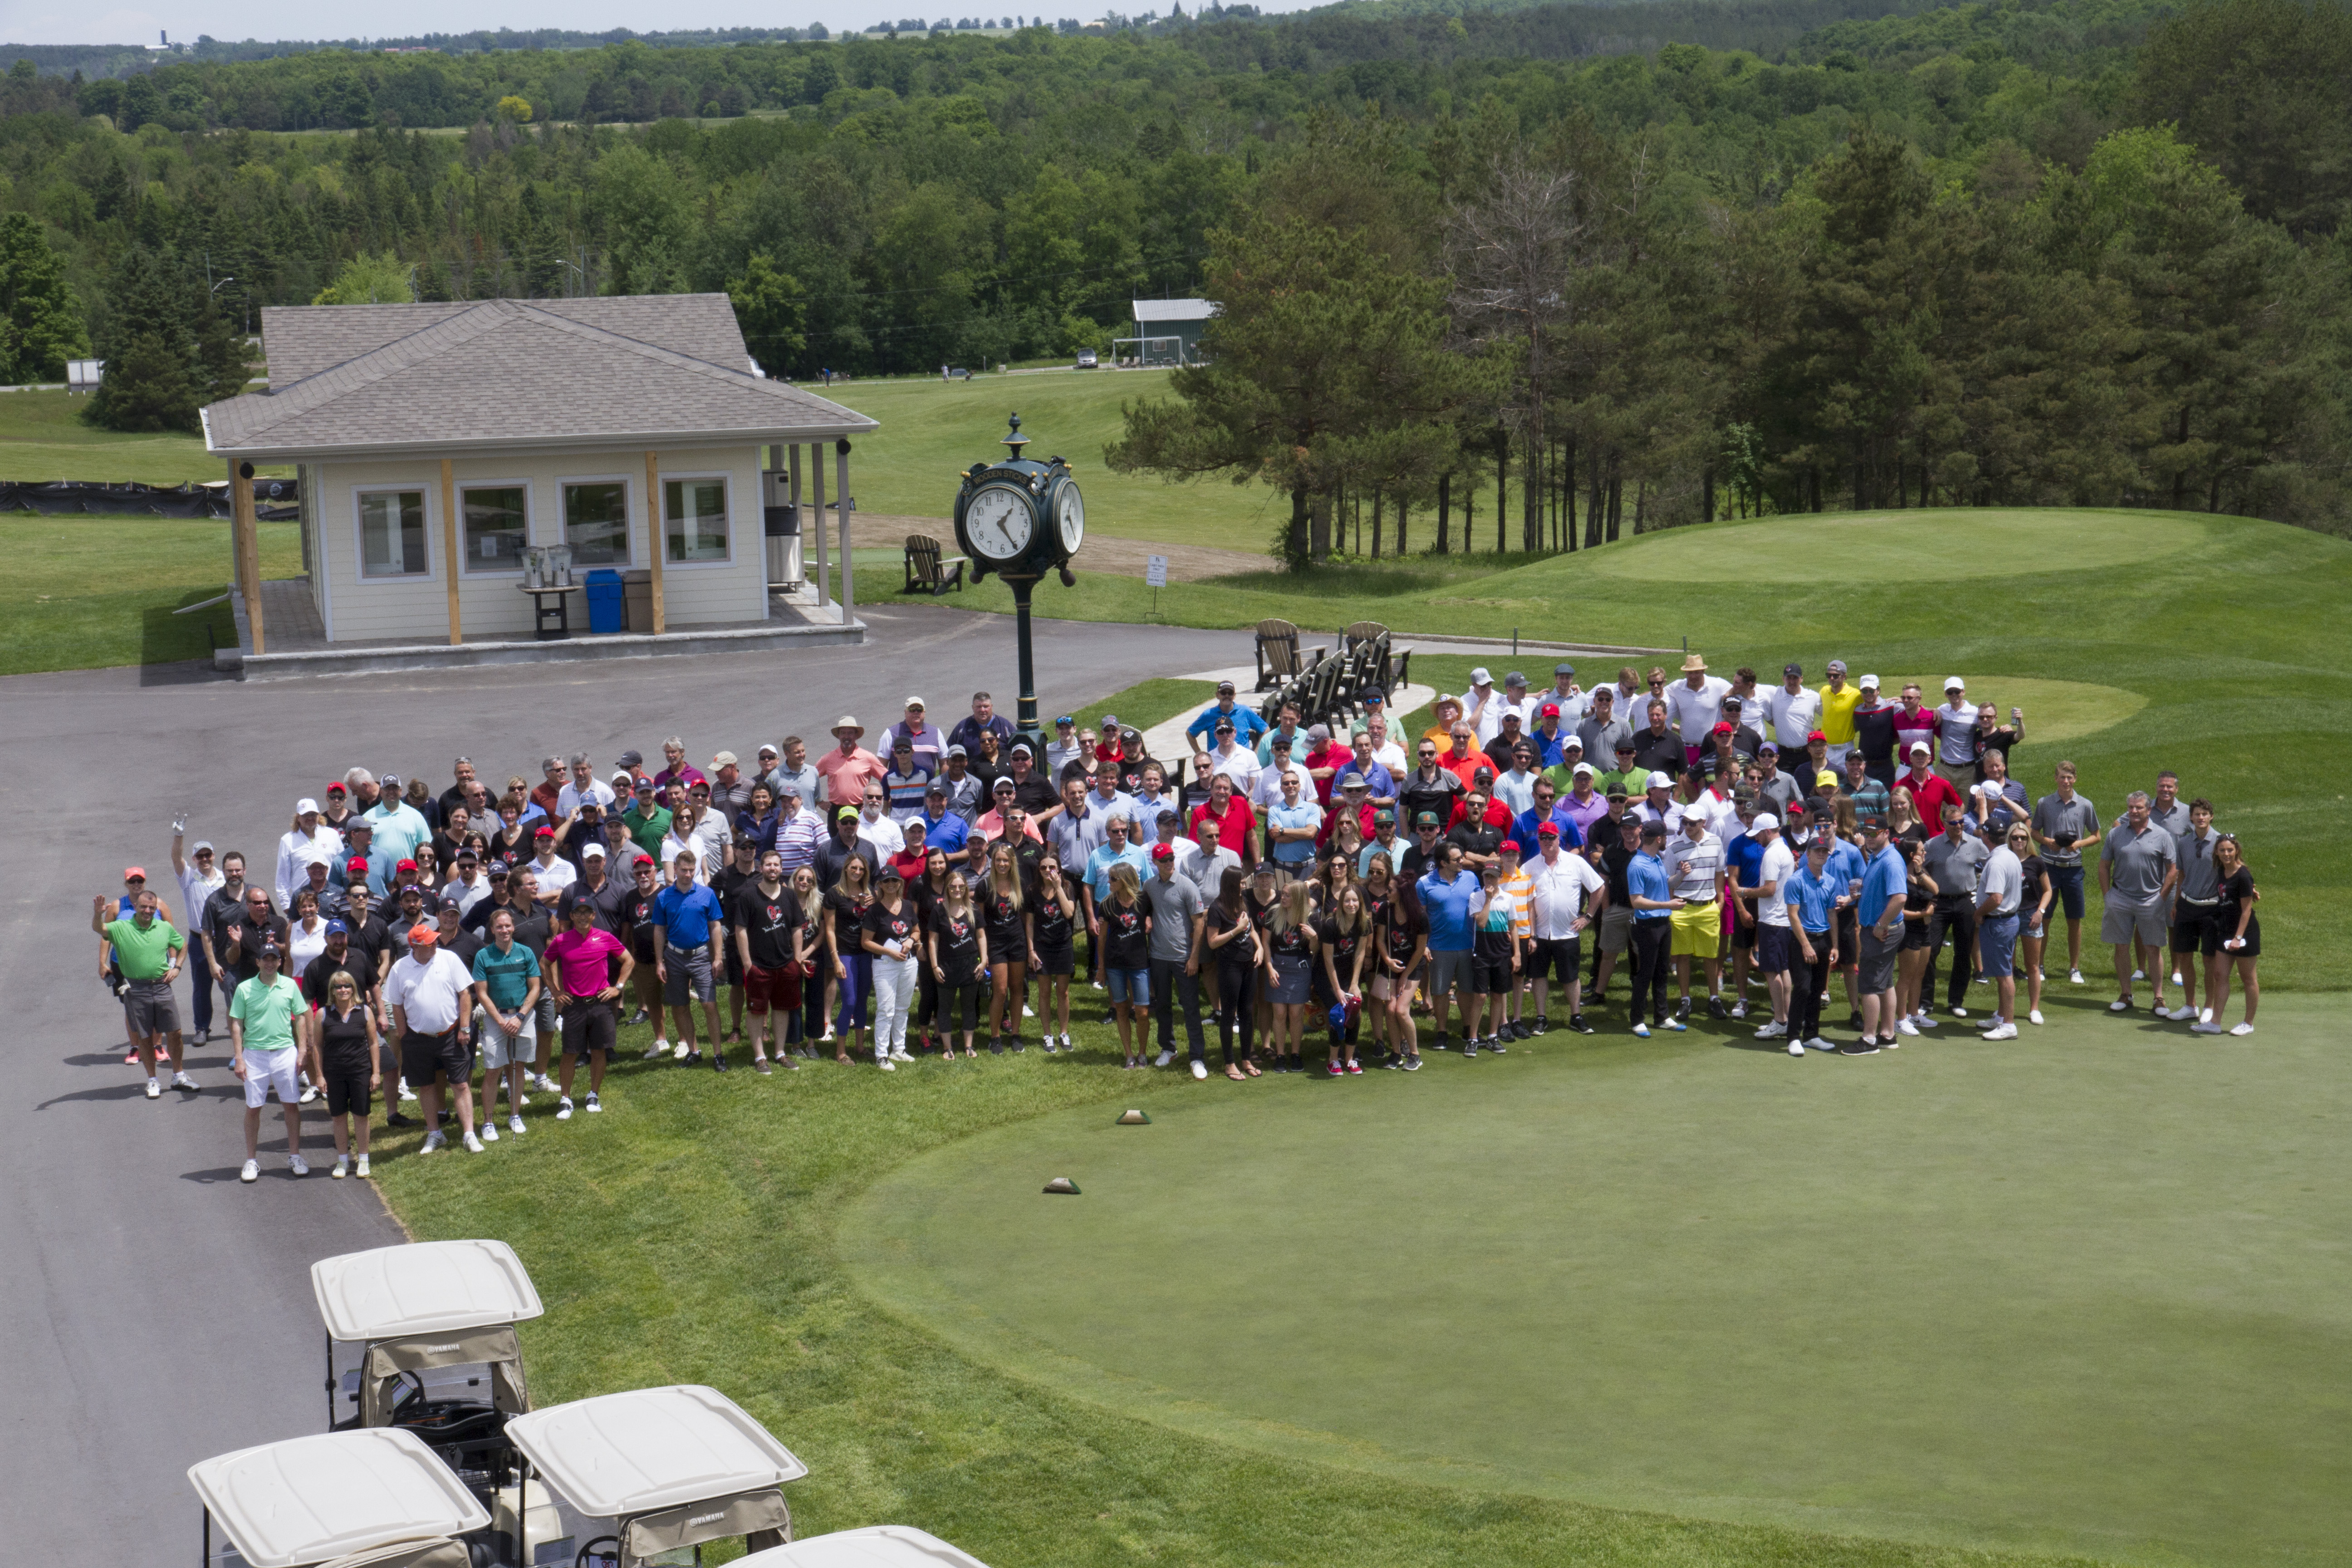 4th Annual Cam's Kids Golf Tournament - Our Best Event Yet!